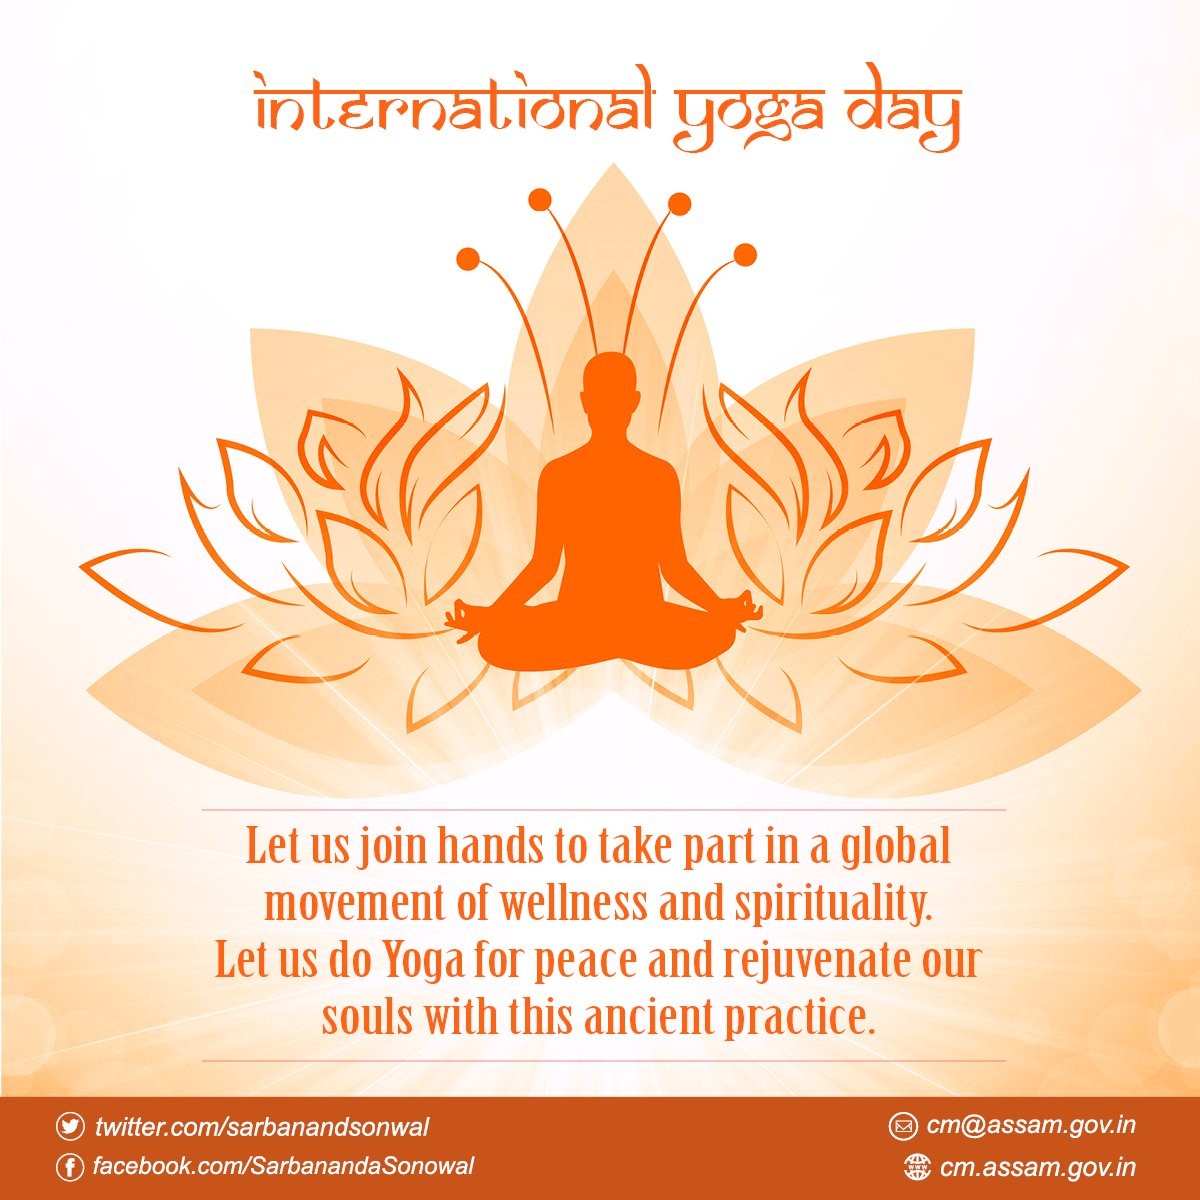 Sarbananda Sonowal On Twitter On Internationalyogaday2018 Let S Celebrate The Spirit Of India S Gift To The World By Making Yoga A Part Of Our Daily Life Yoga For A Healthy Body And A